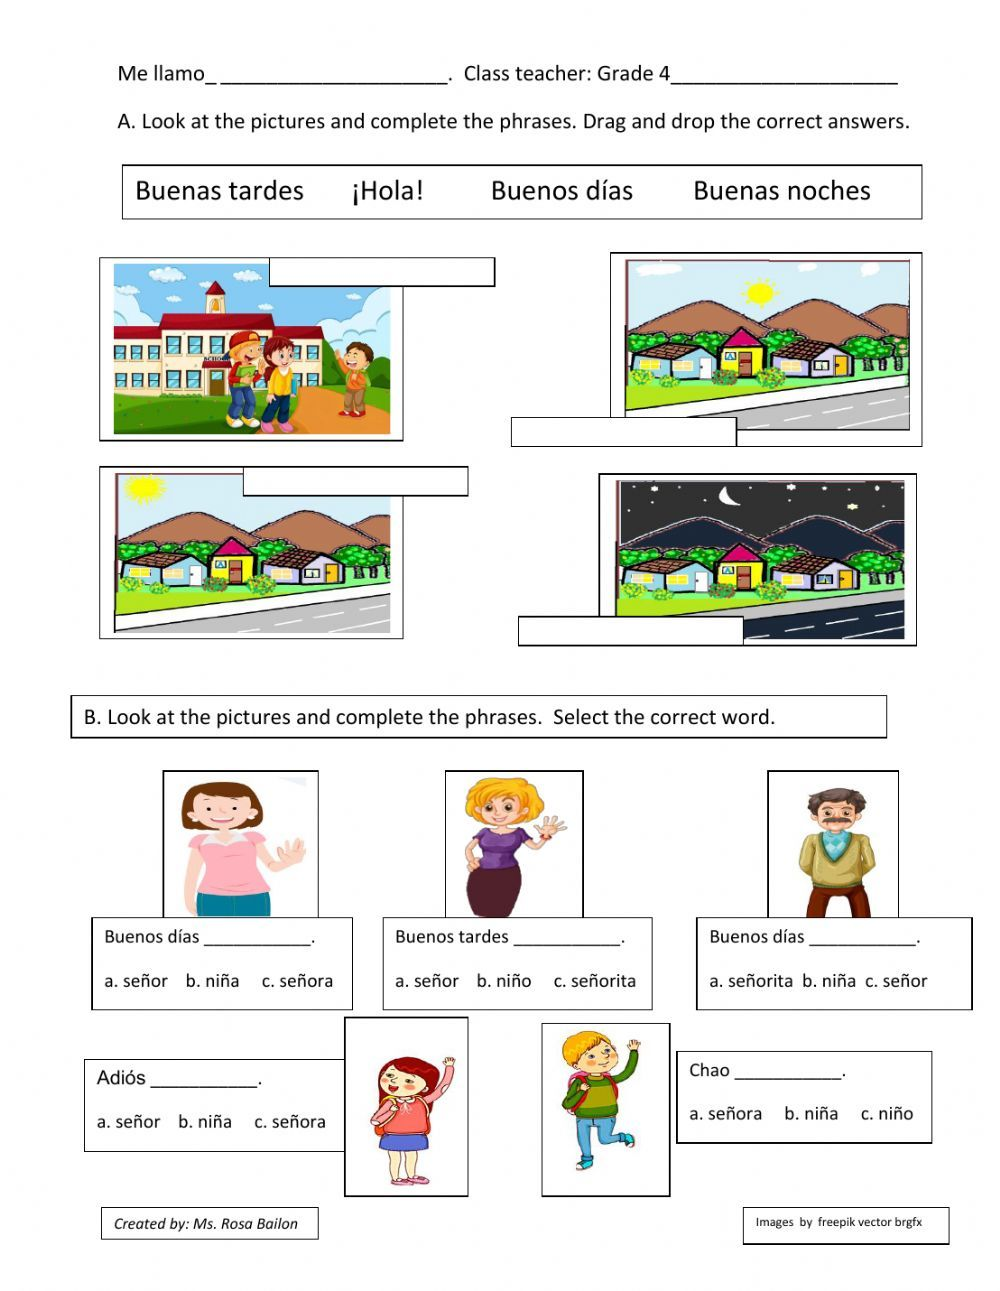 Saludos Y Despedidas Interactive Exercise For Grade 4 Elementary You Can Do The Exercises Online Or Download The Worksheet In 2021 Elementary Workbook School Subjects